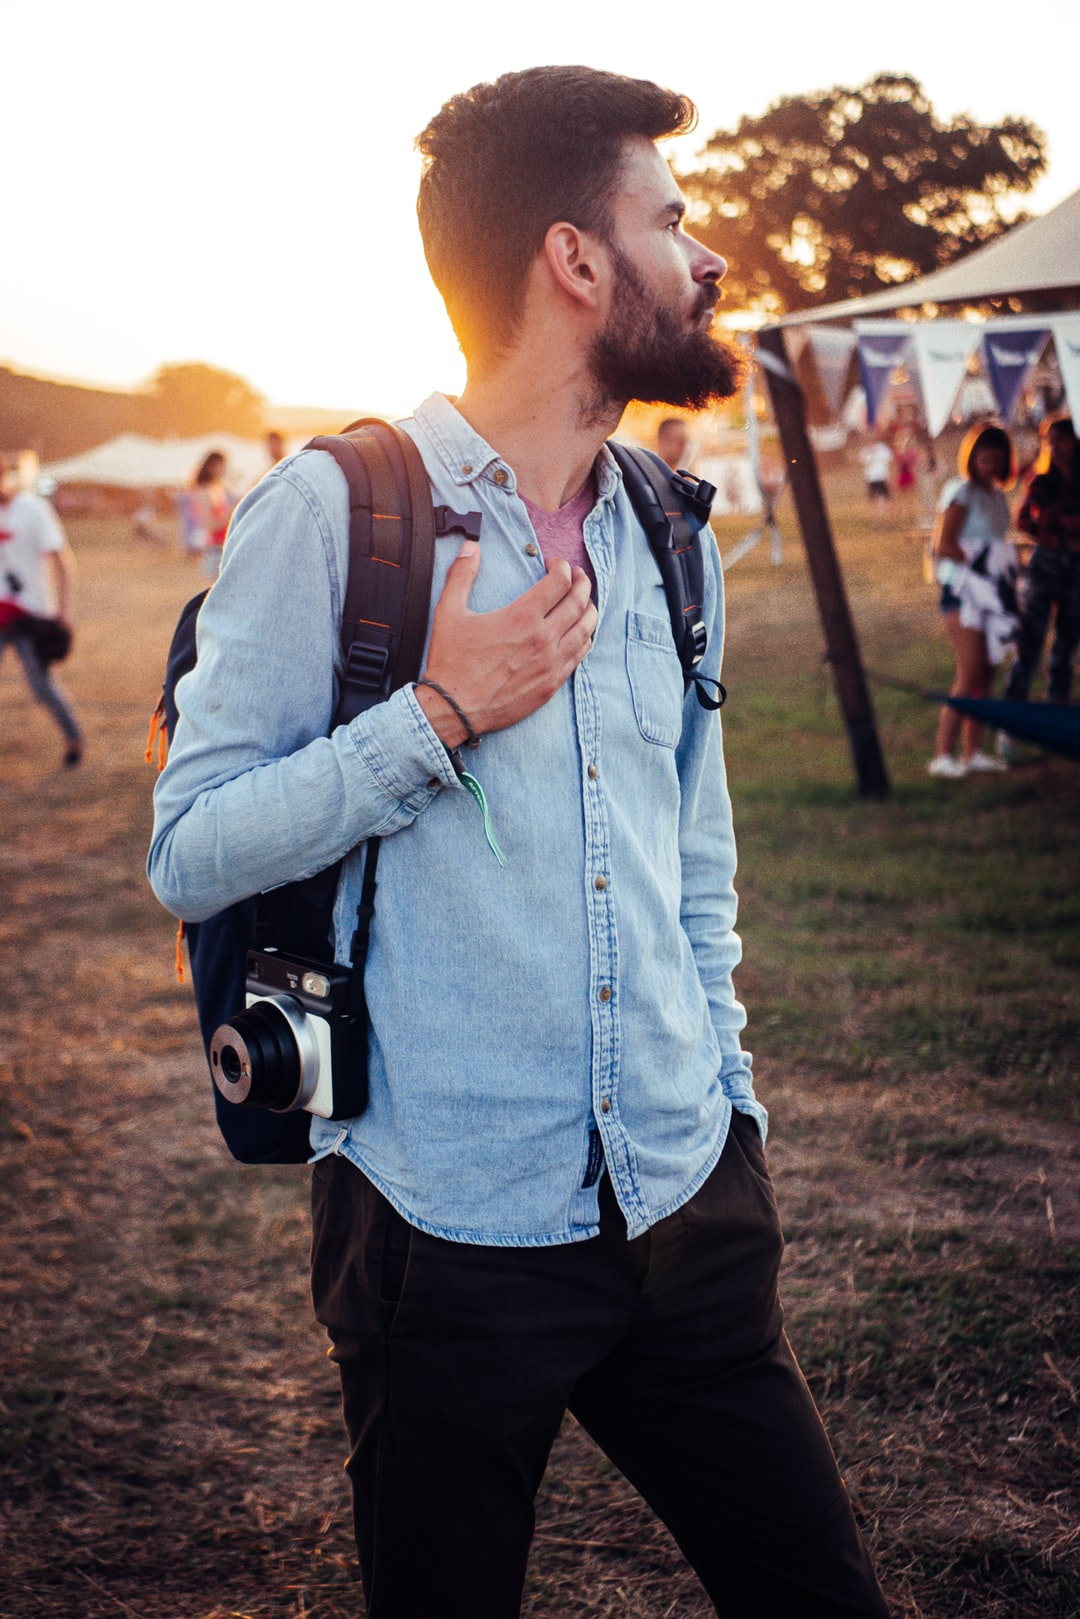 Profile picture of a music festival young male at sunset with backpack and polaroid camera, nature background.